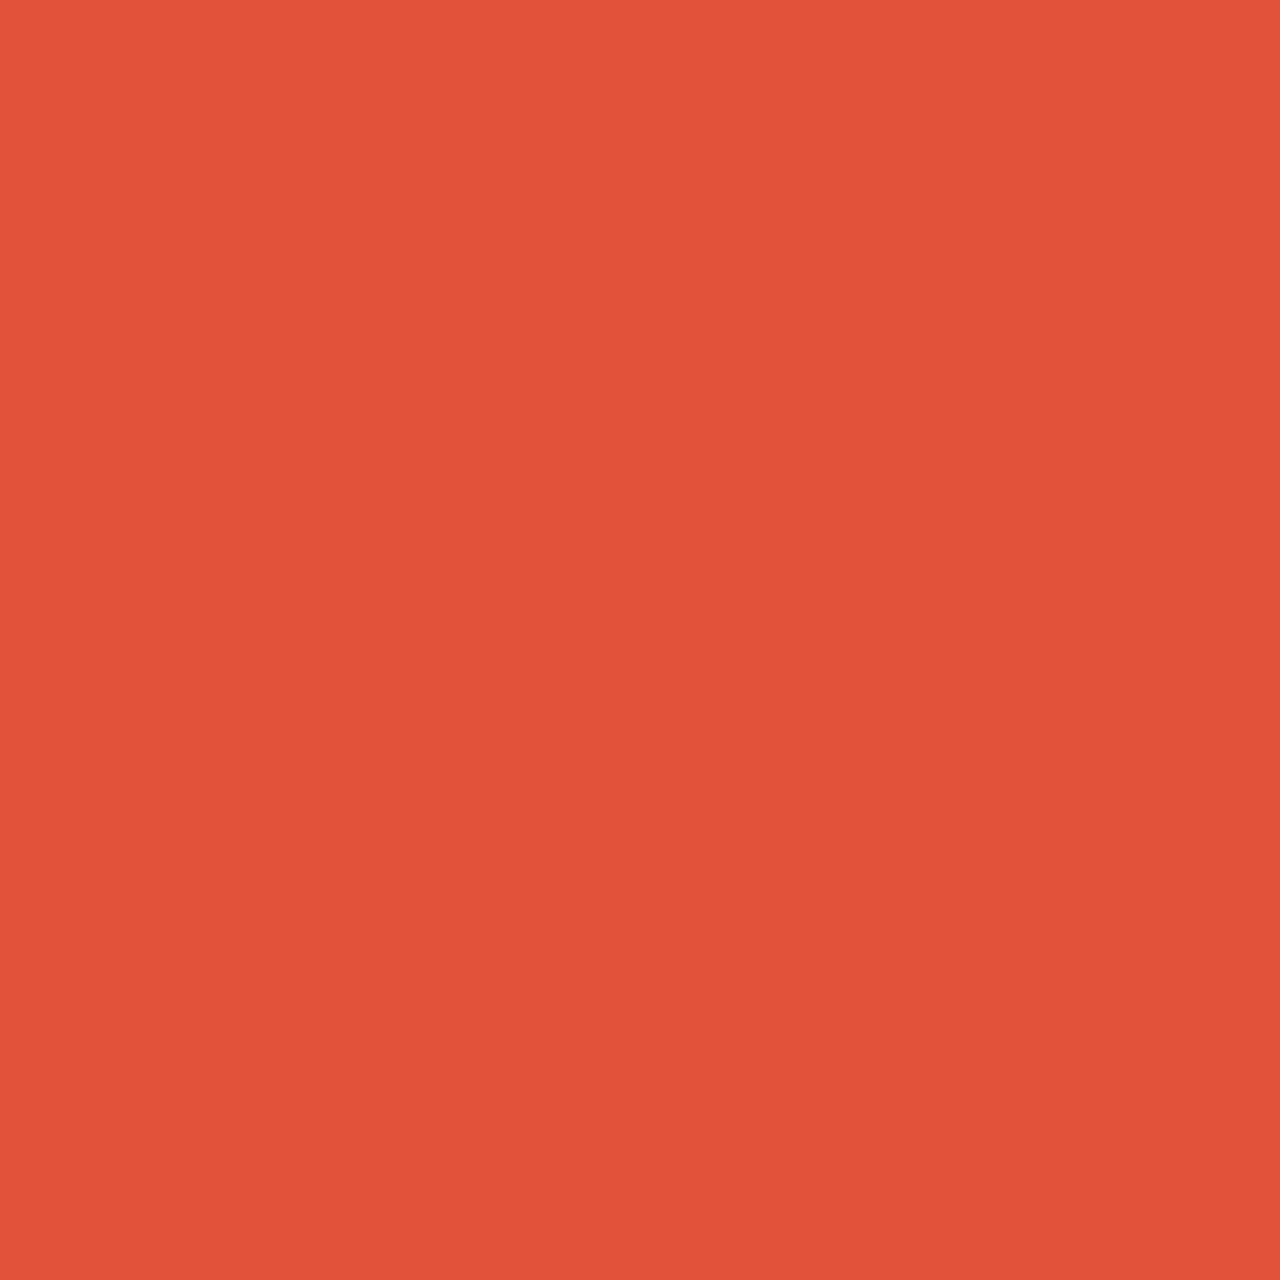 2011 PANTONE Color of the year.  PANTONE 17-1463 Tangerine Tango